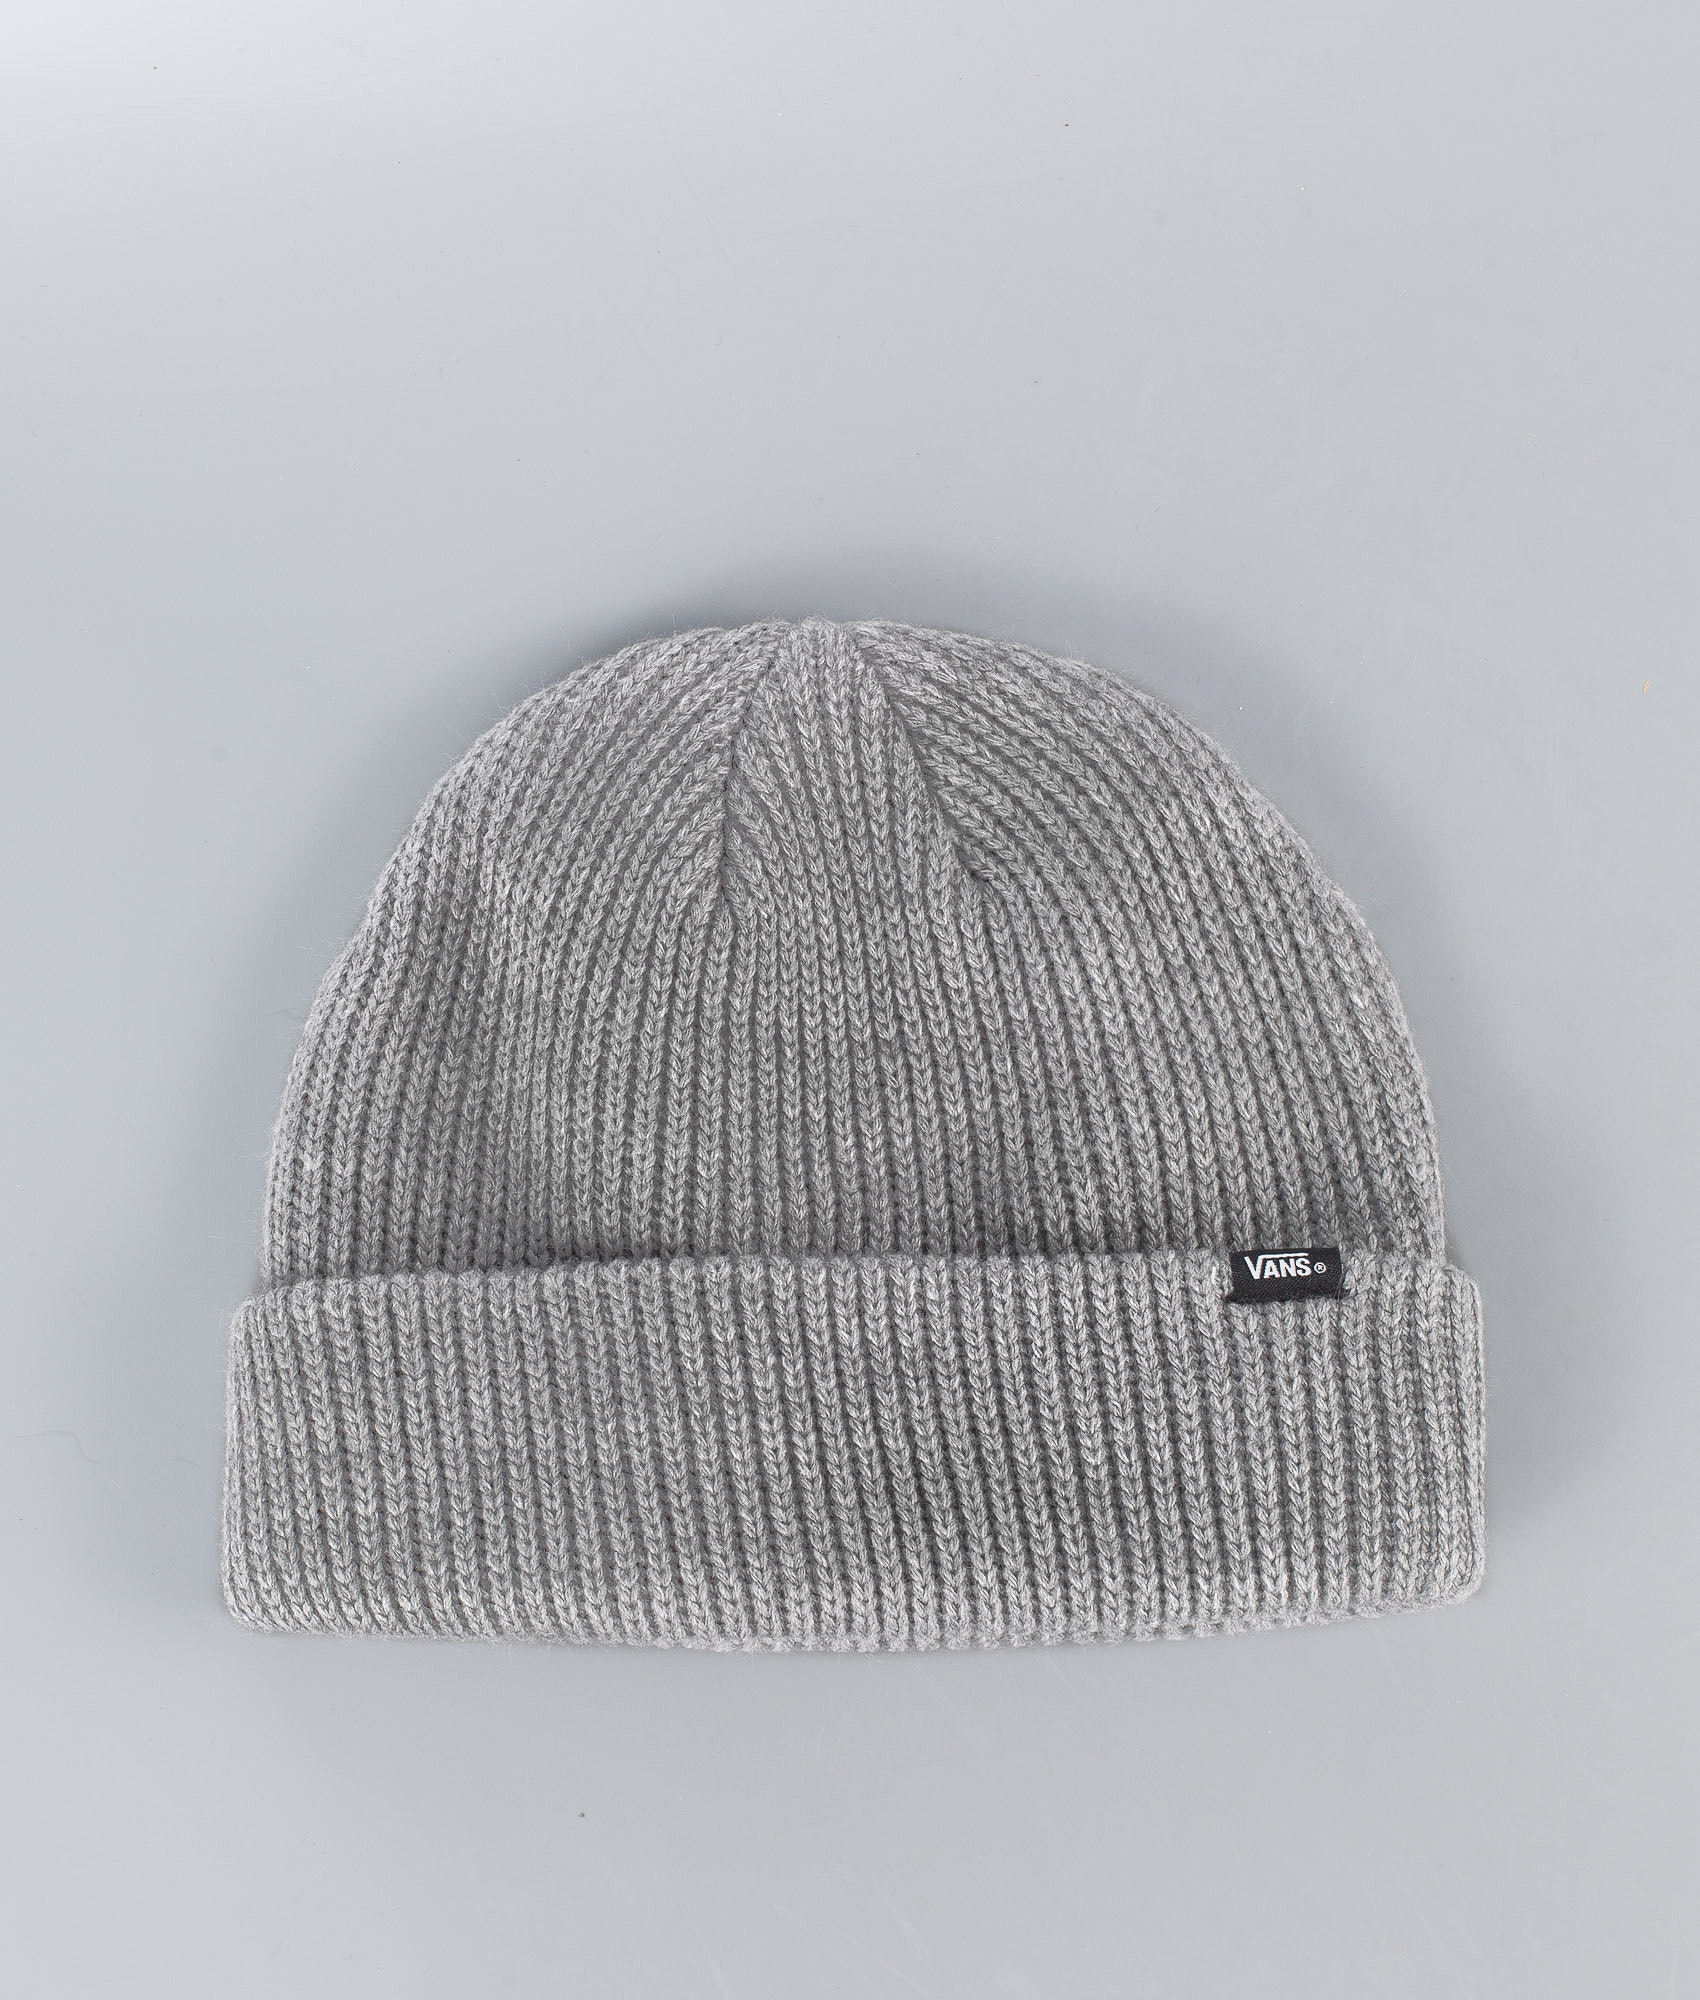 350a2da7e857e Vans Core Basics Beanie Heather Grey - Ridestore.com